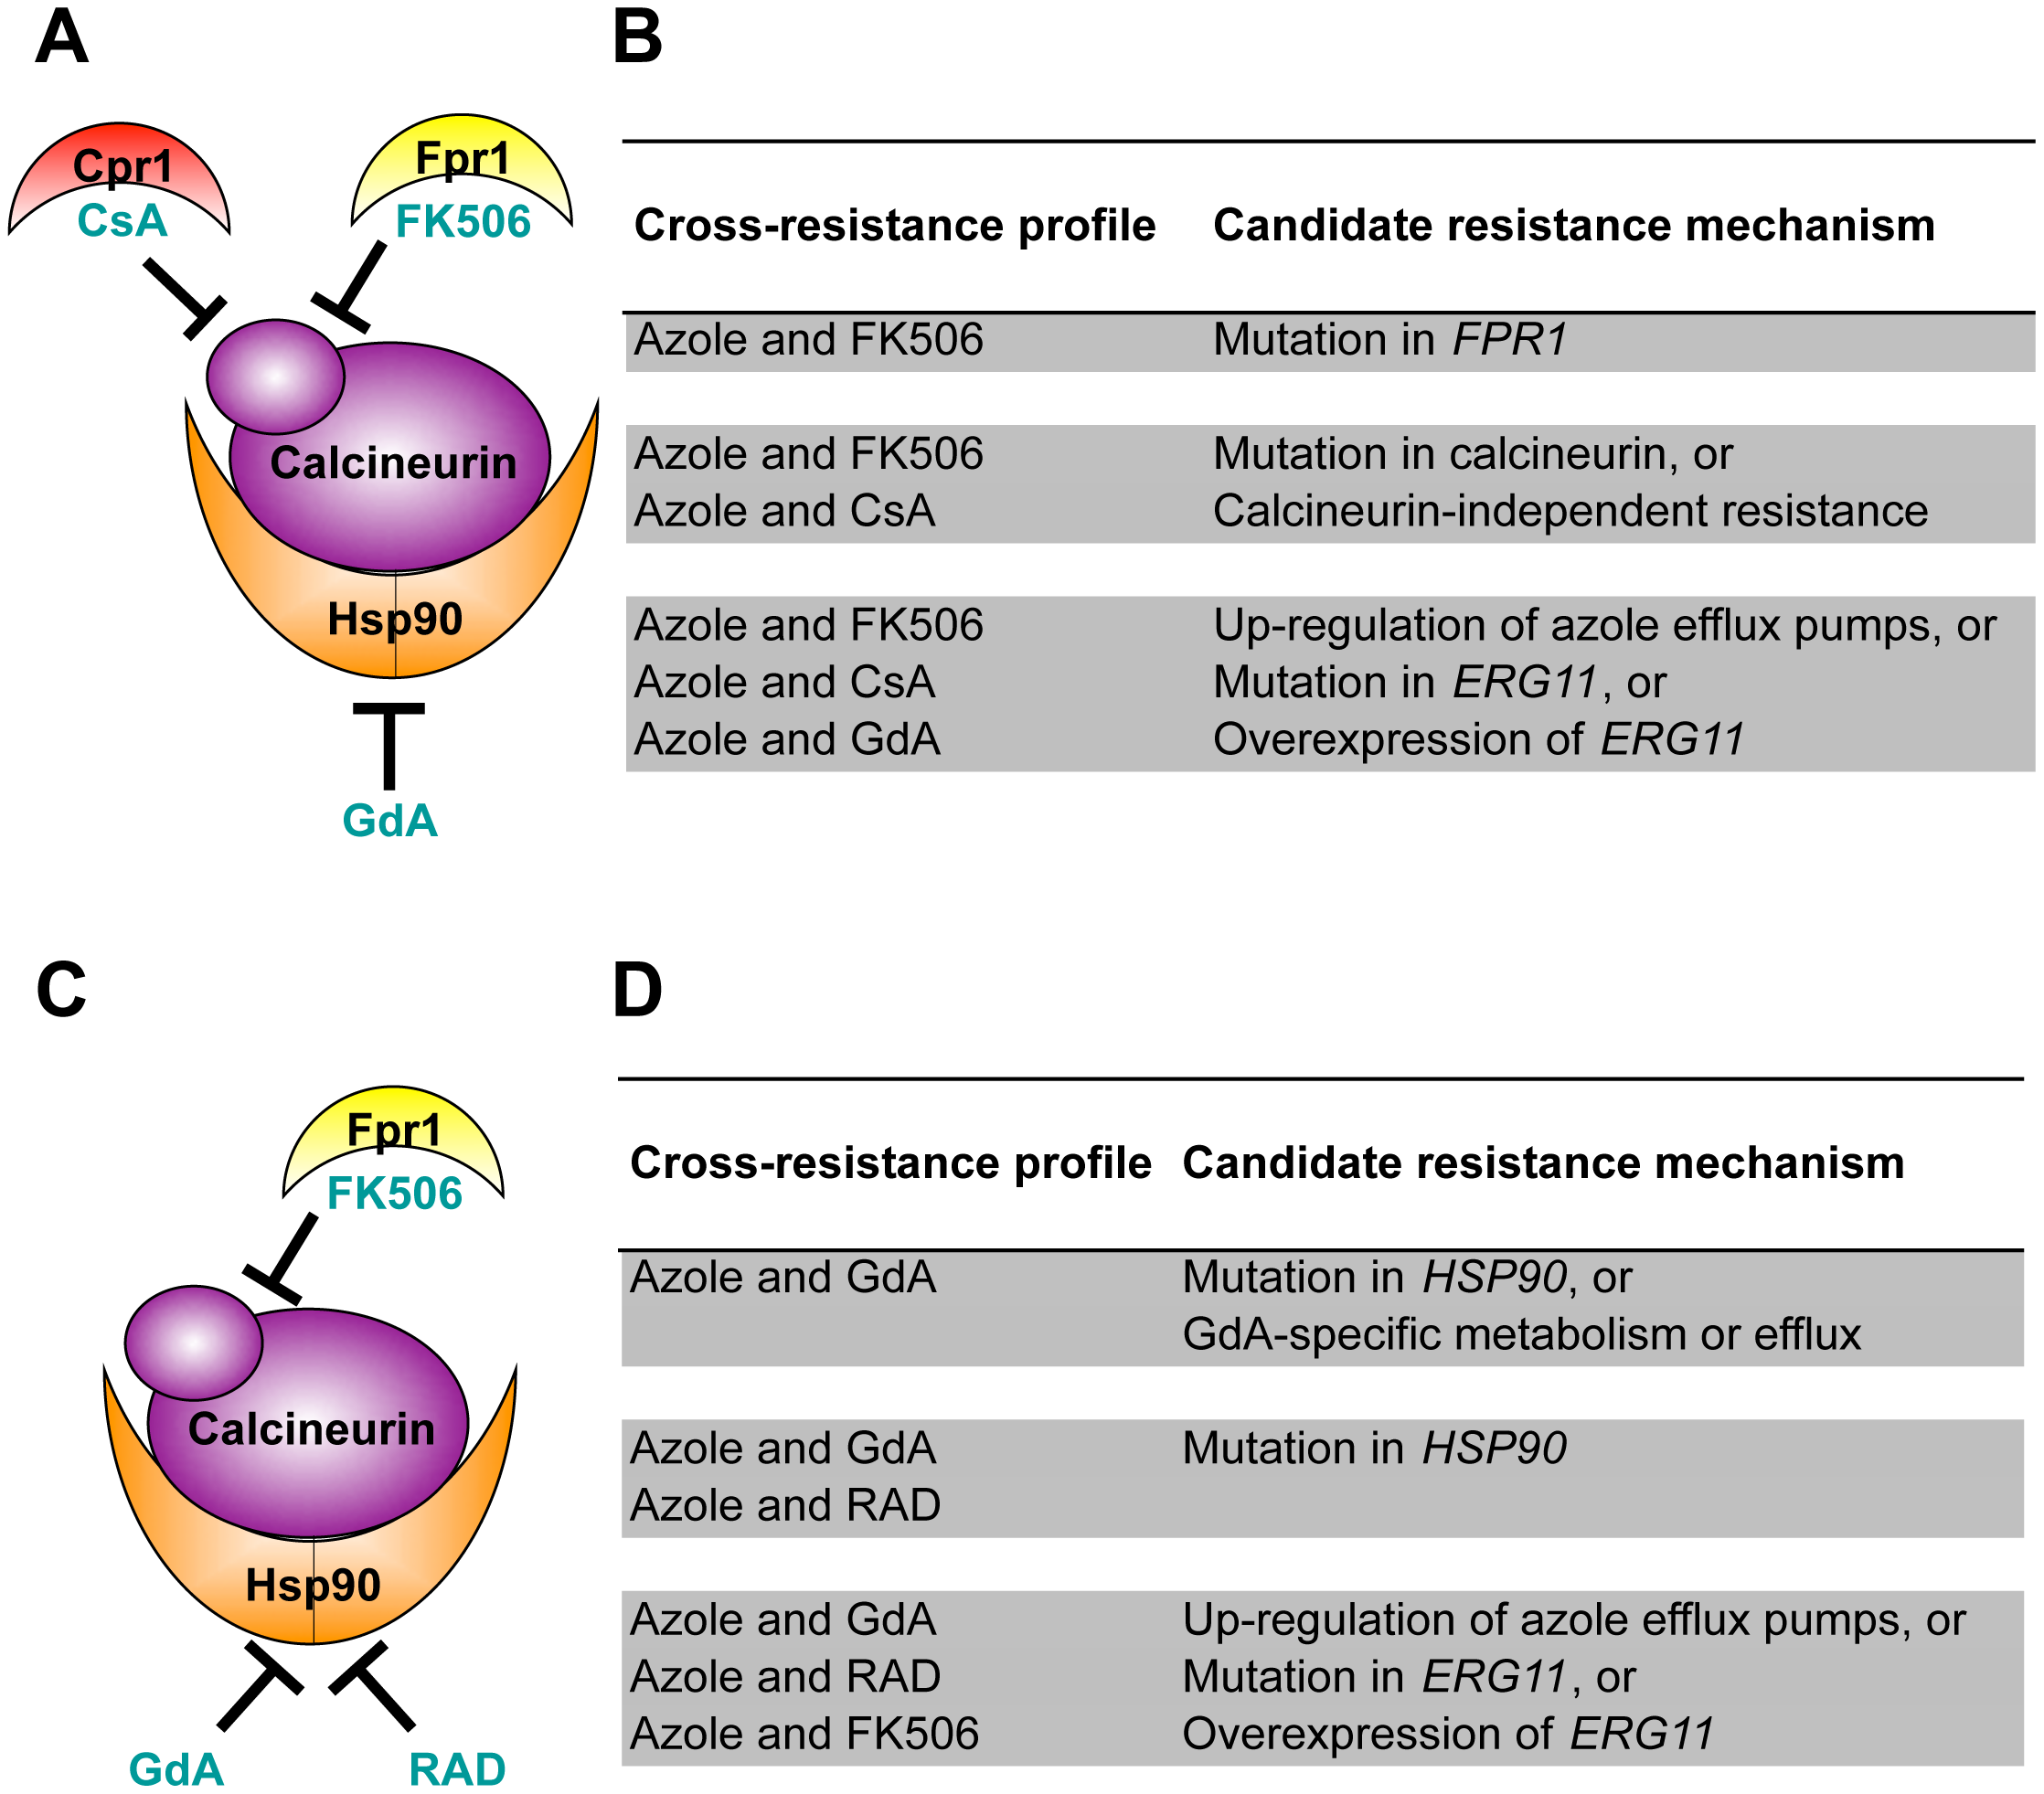 Cross-resistance profiles provide a strategy to predict resistance mechanisms.